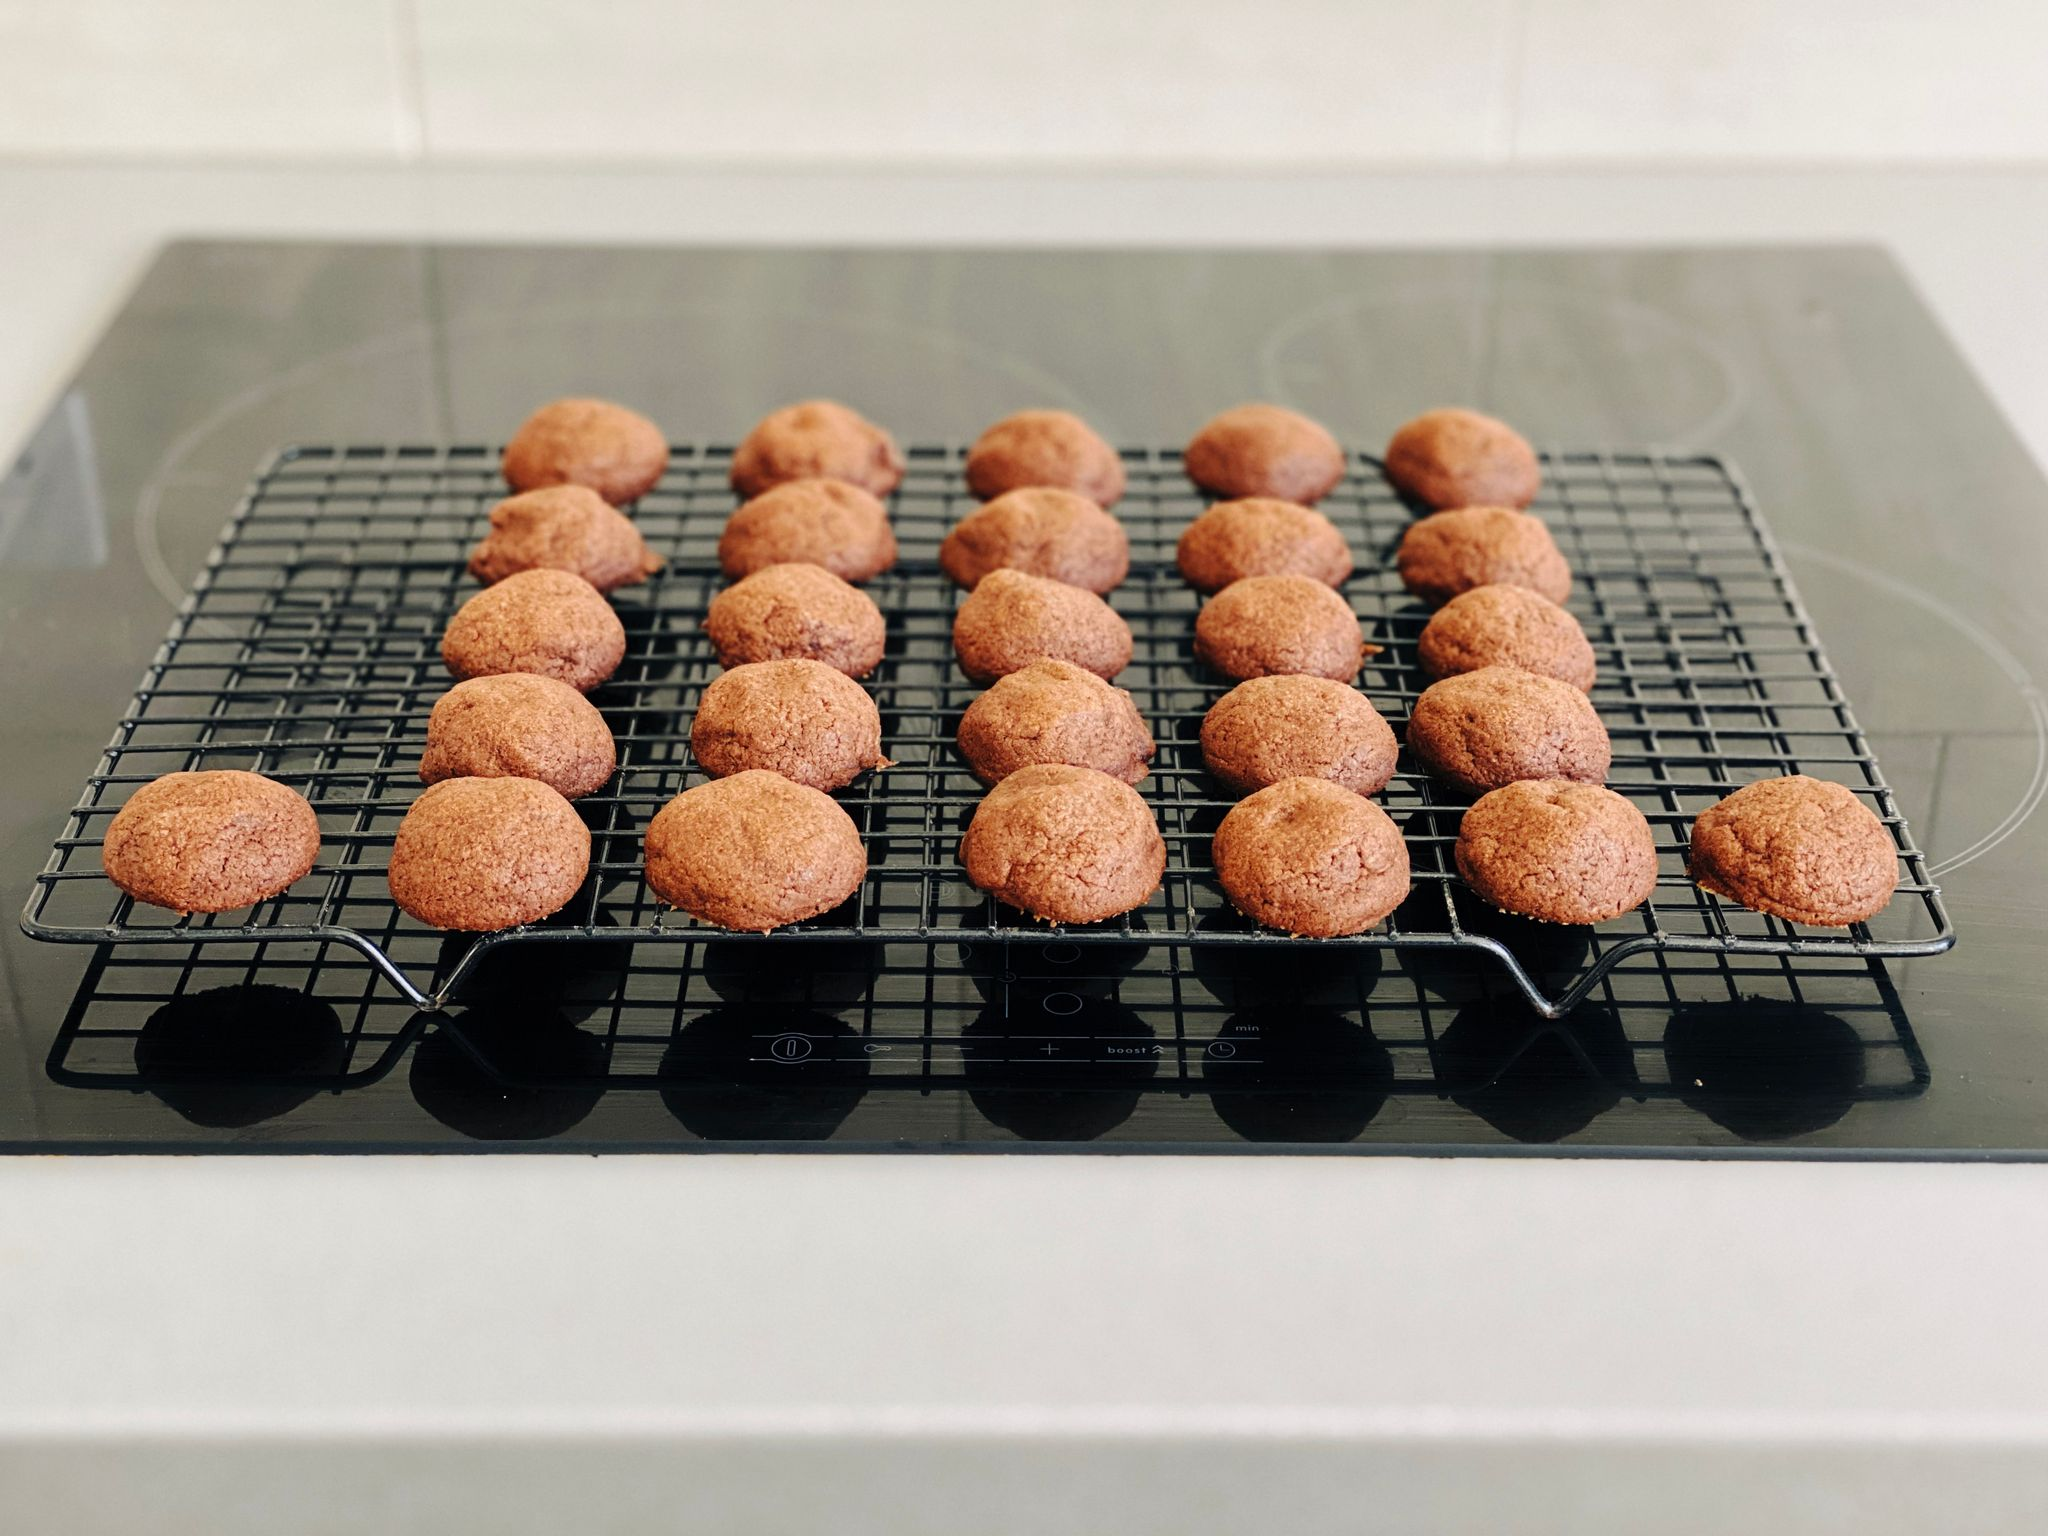 A photo of a batch of small round button-shaped chocolate cookies sitting on a cooling rack.